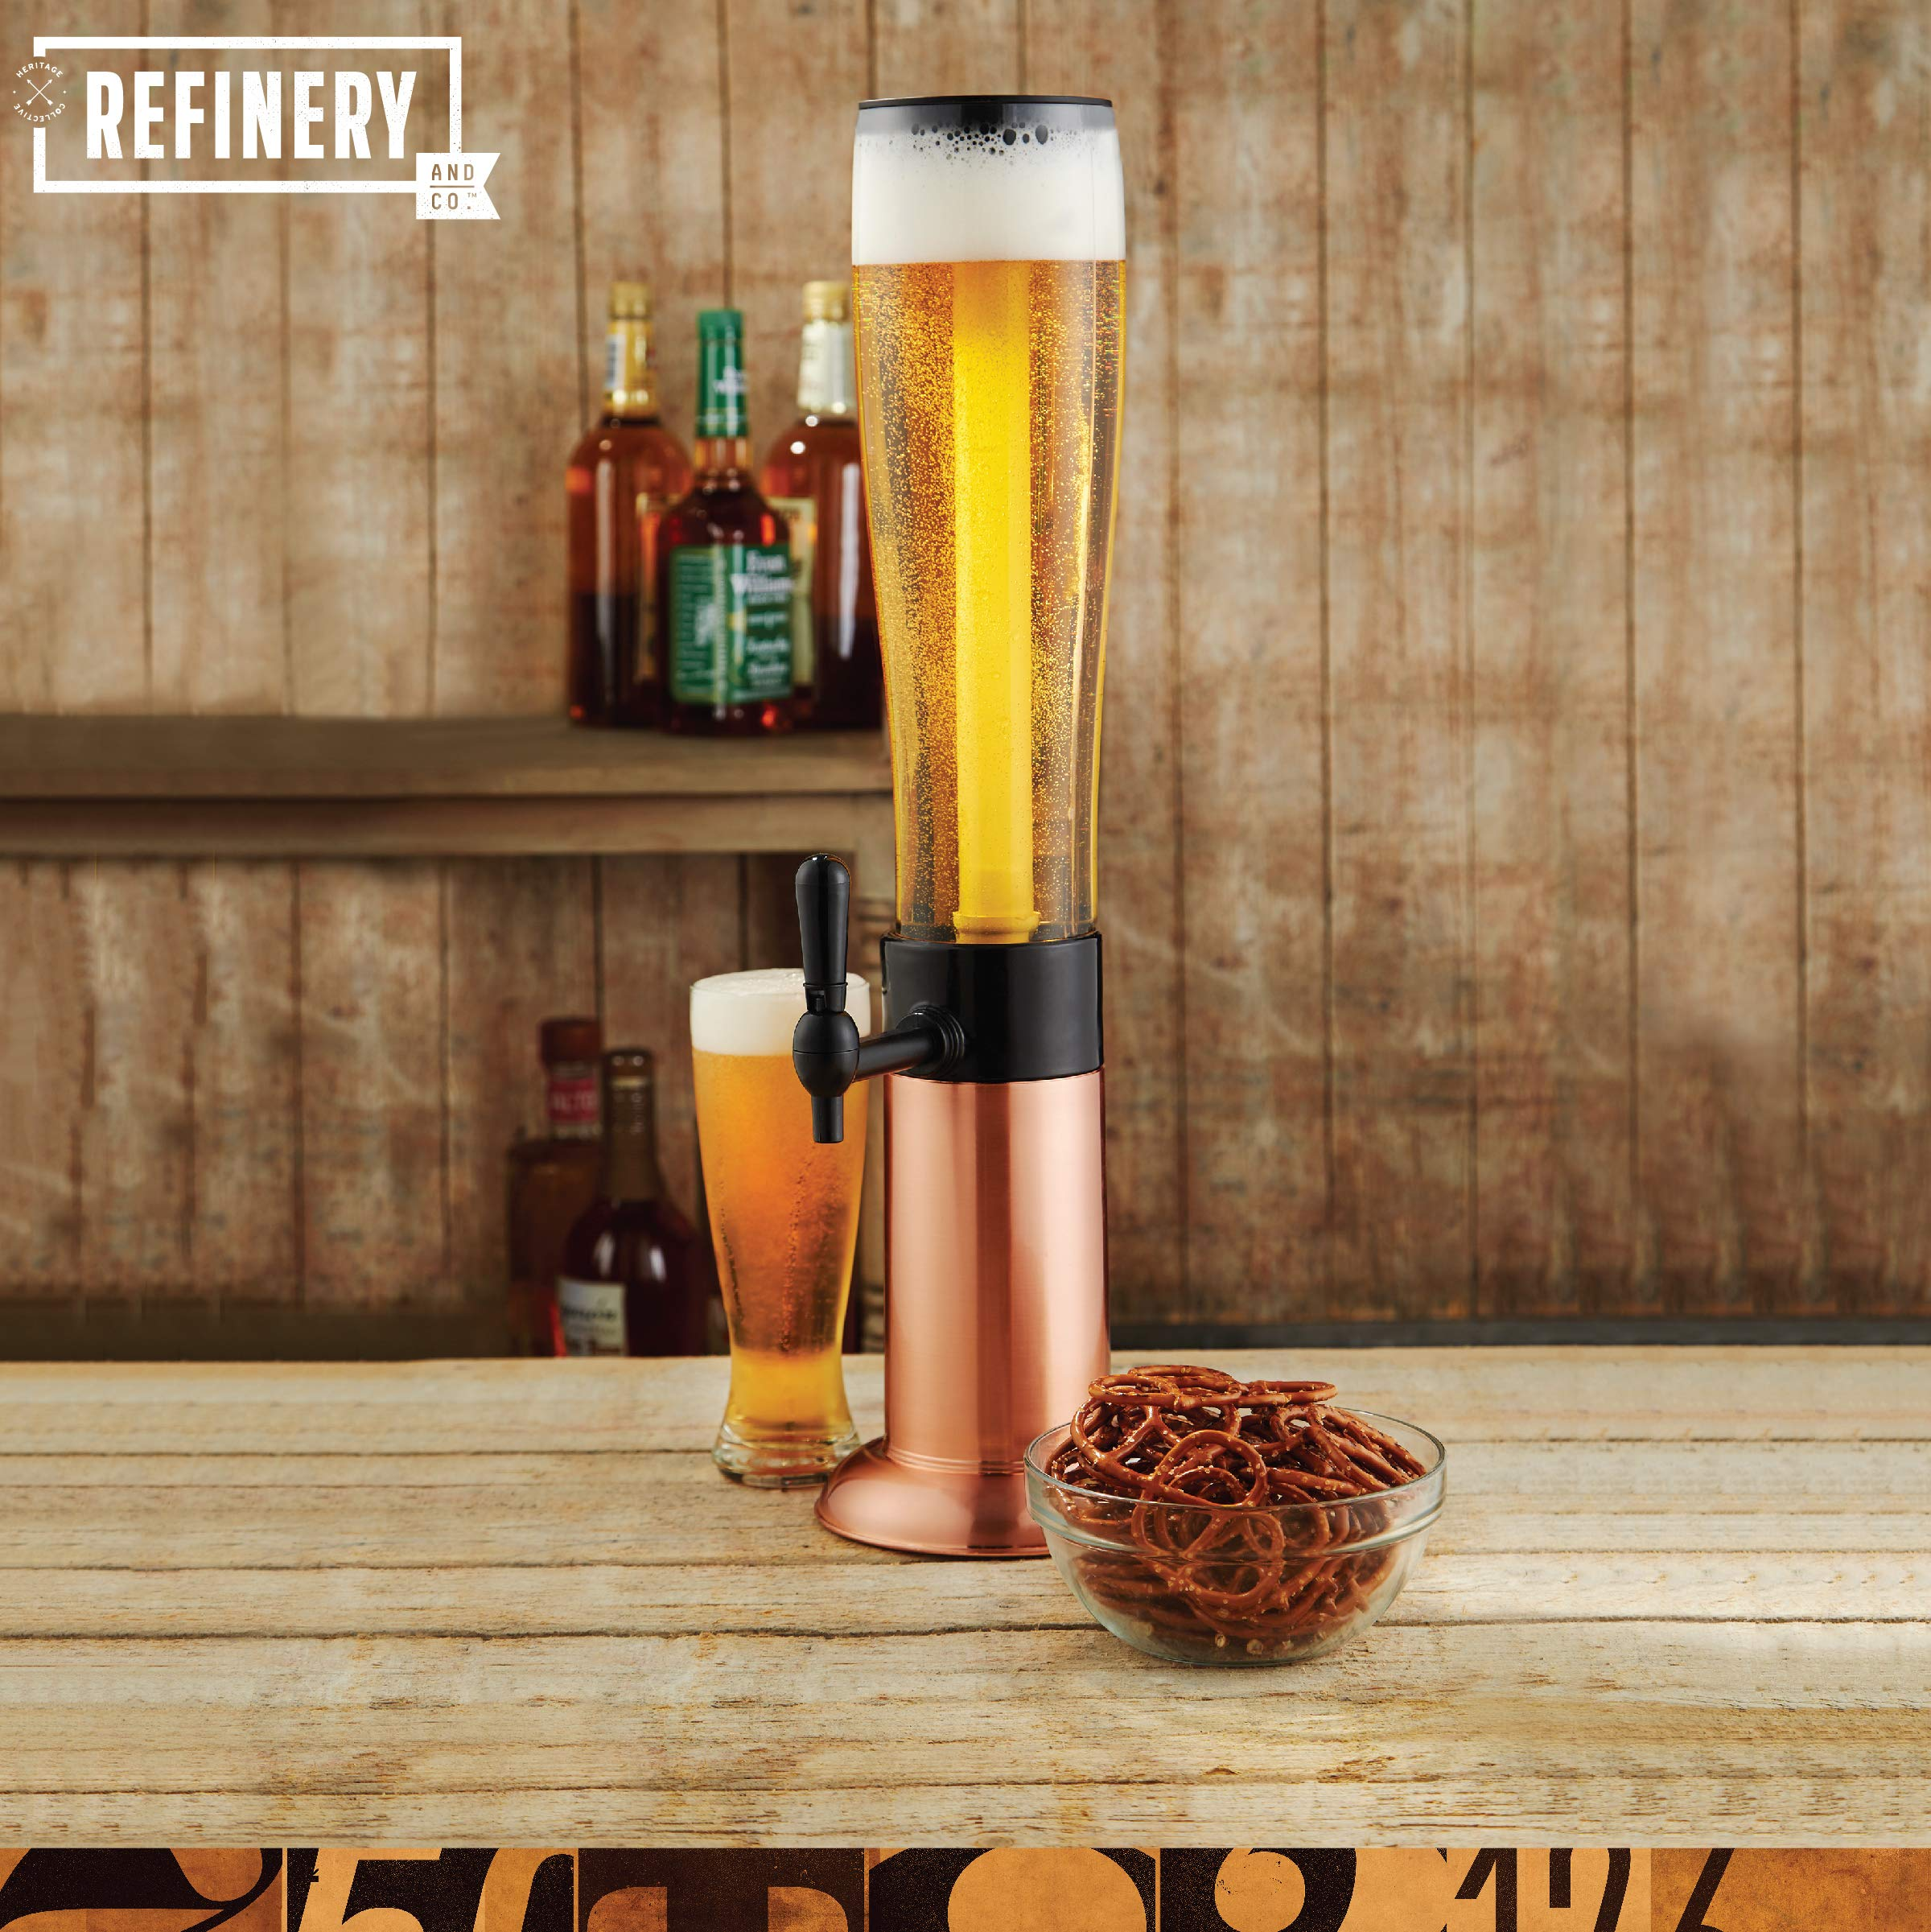 Refinery Beer Tower Drink Dispenser with Pro-Pour Tap and Freeze Tube to Keep Beverages Ice Cold, Perfect for Parties and Gameday, Home Bar Accessories, Simple to Clean, 2.75 Qt./2.6 L, Copper Finish by Refinery (Image #2)